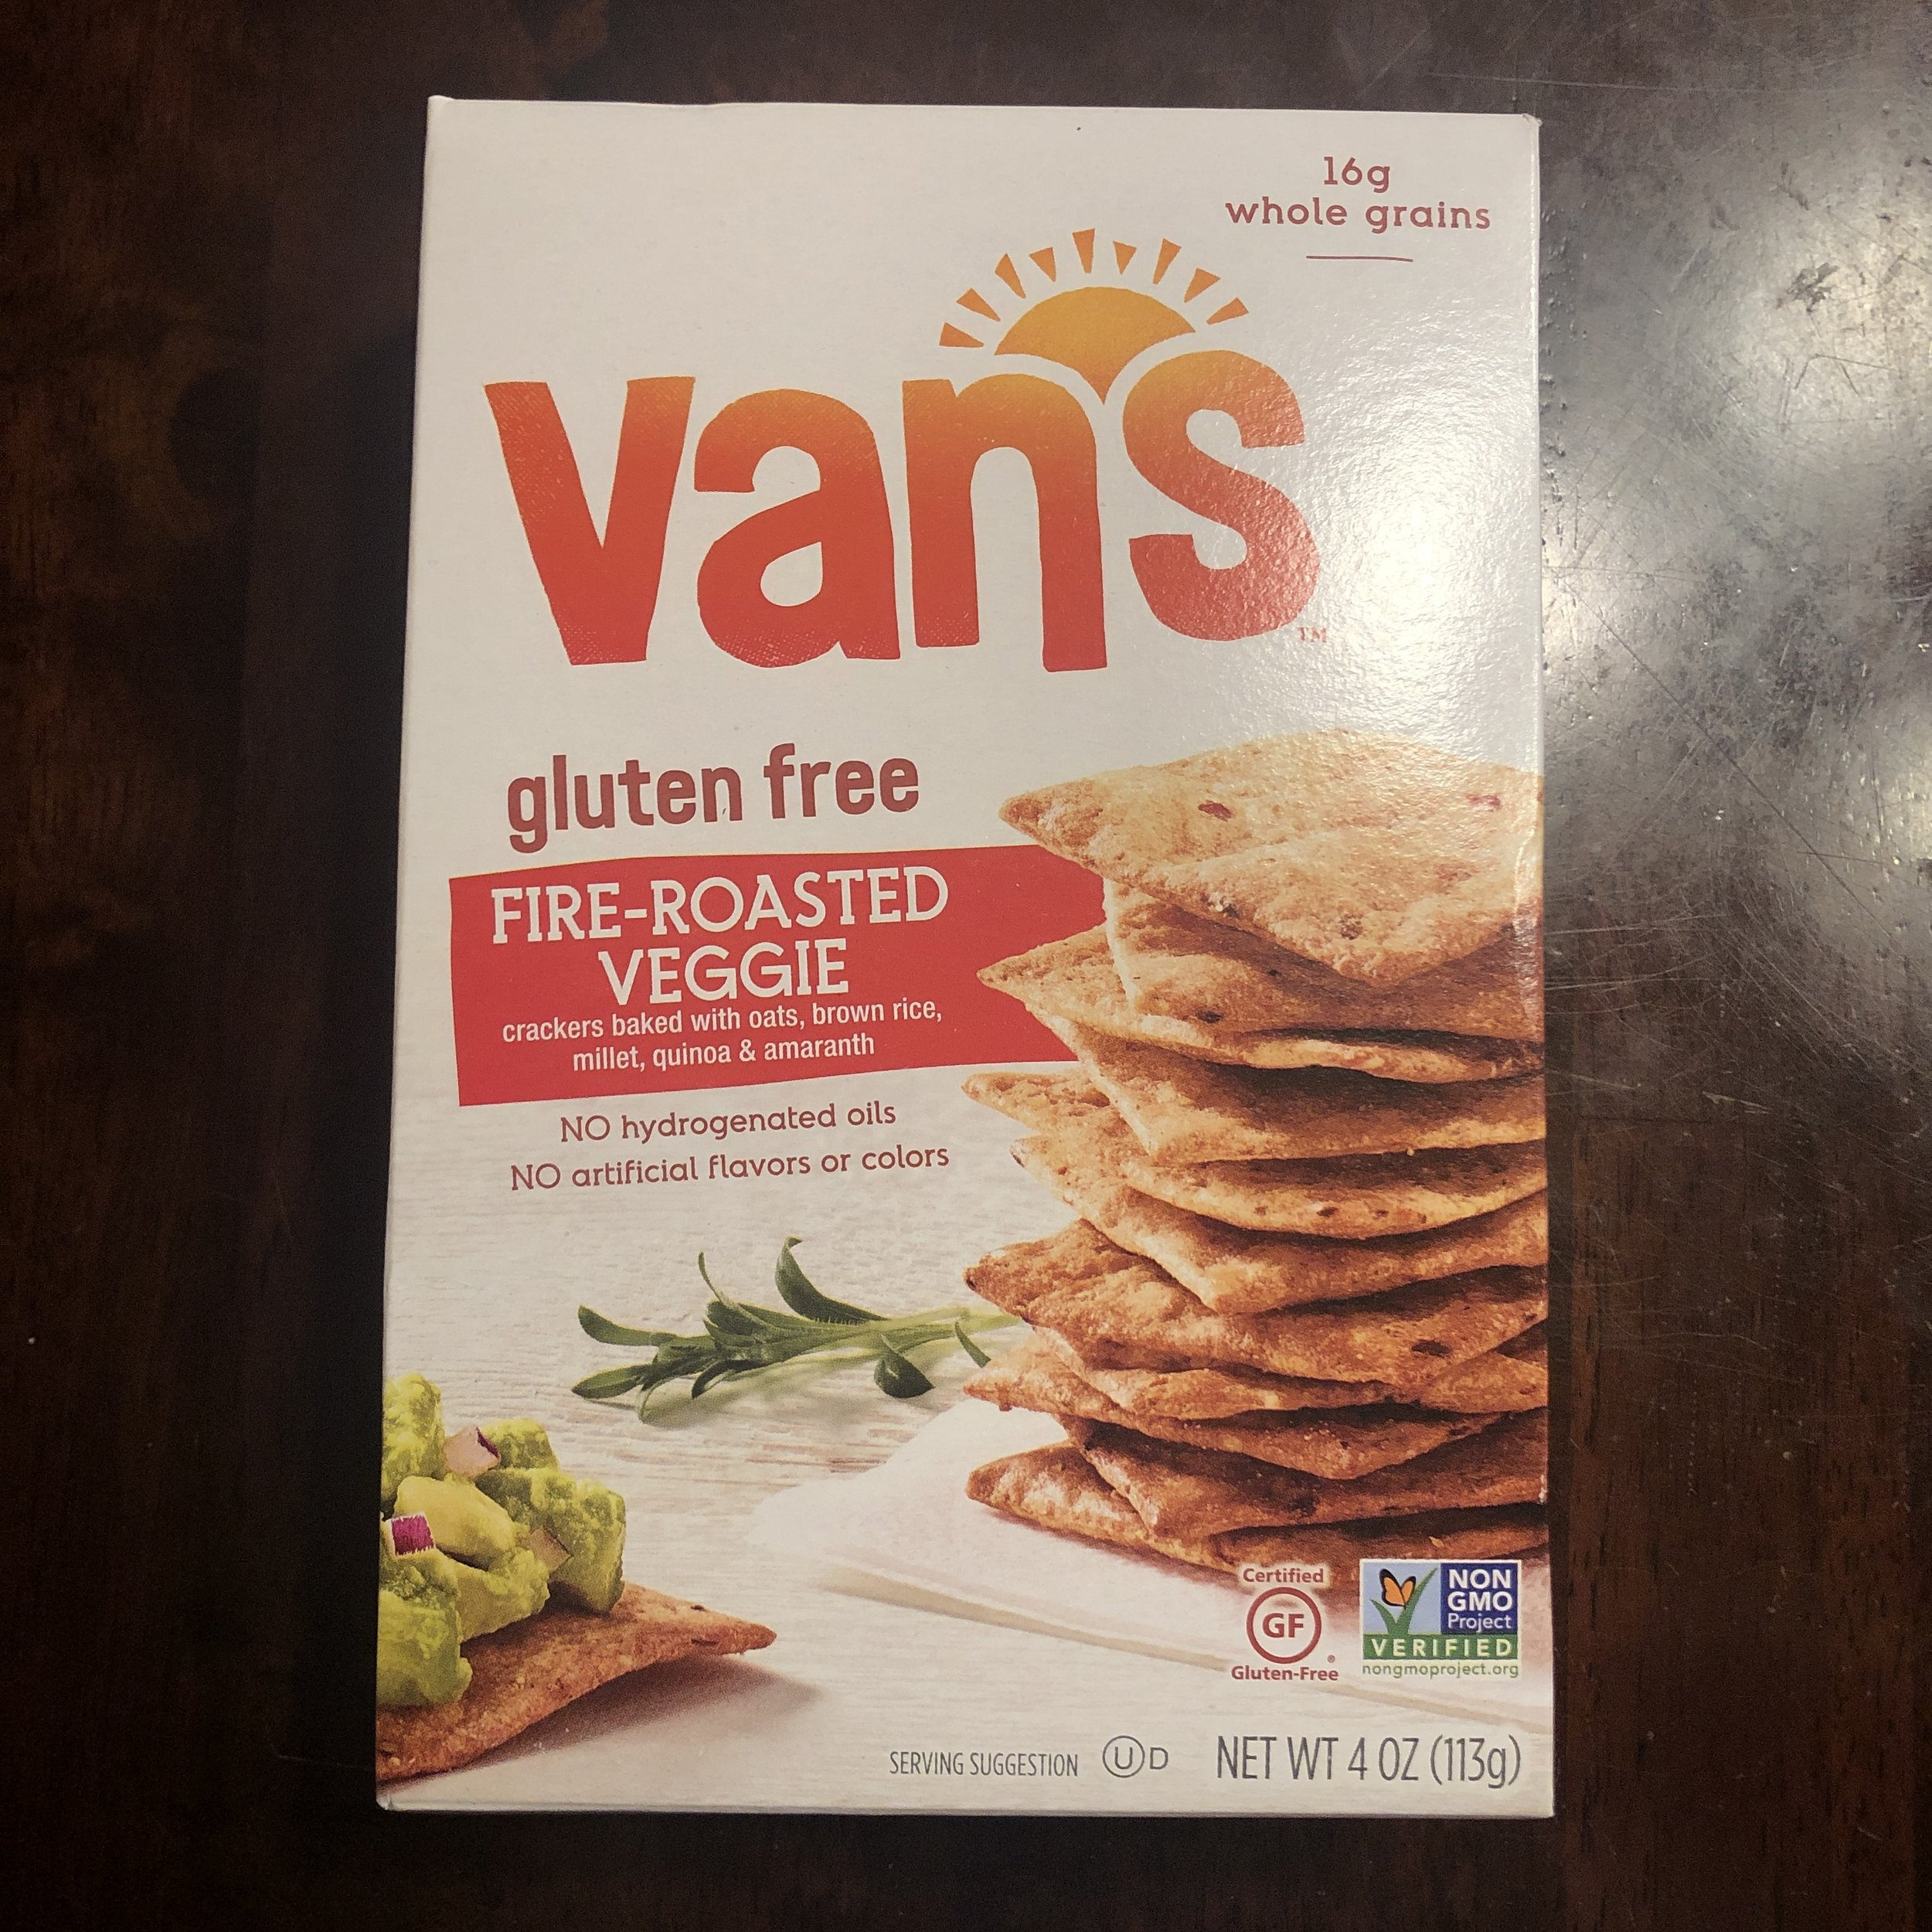 Van_s - Gluten Free Fire-Roasted Veggie Crackers - #S71811.JPG